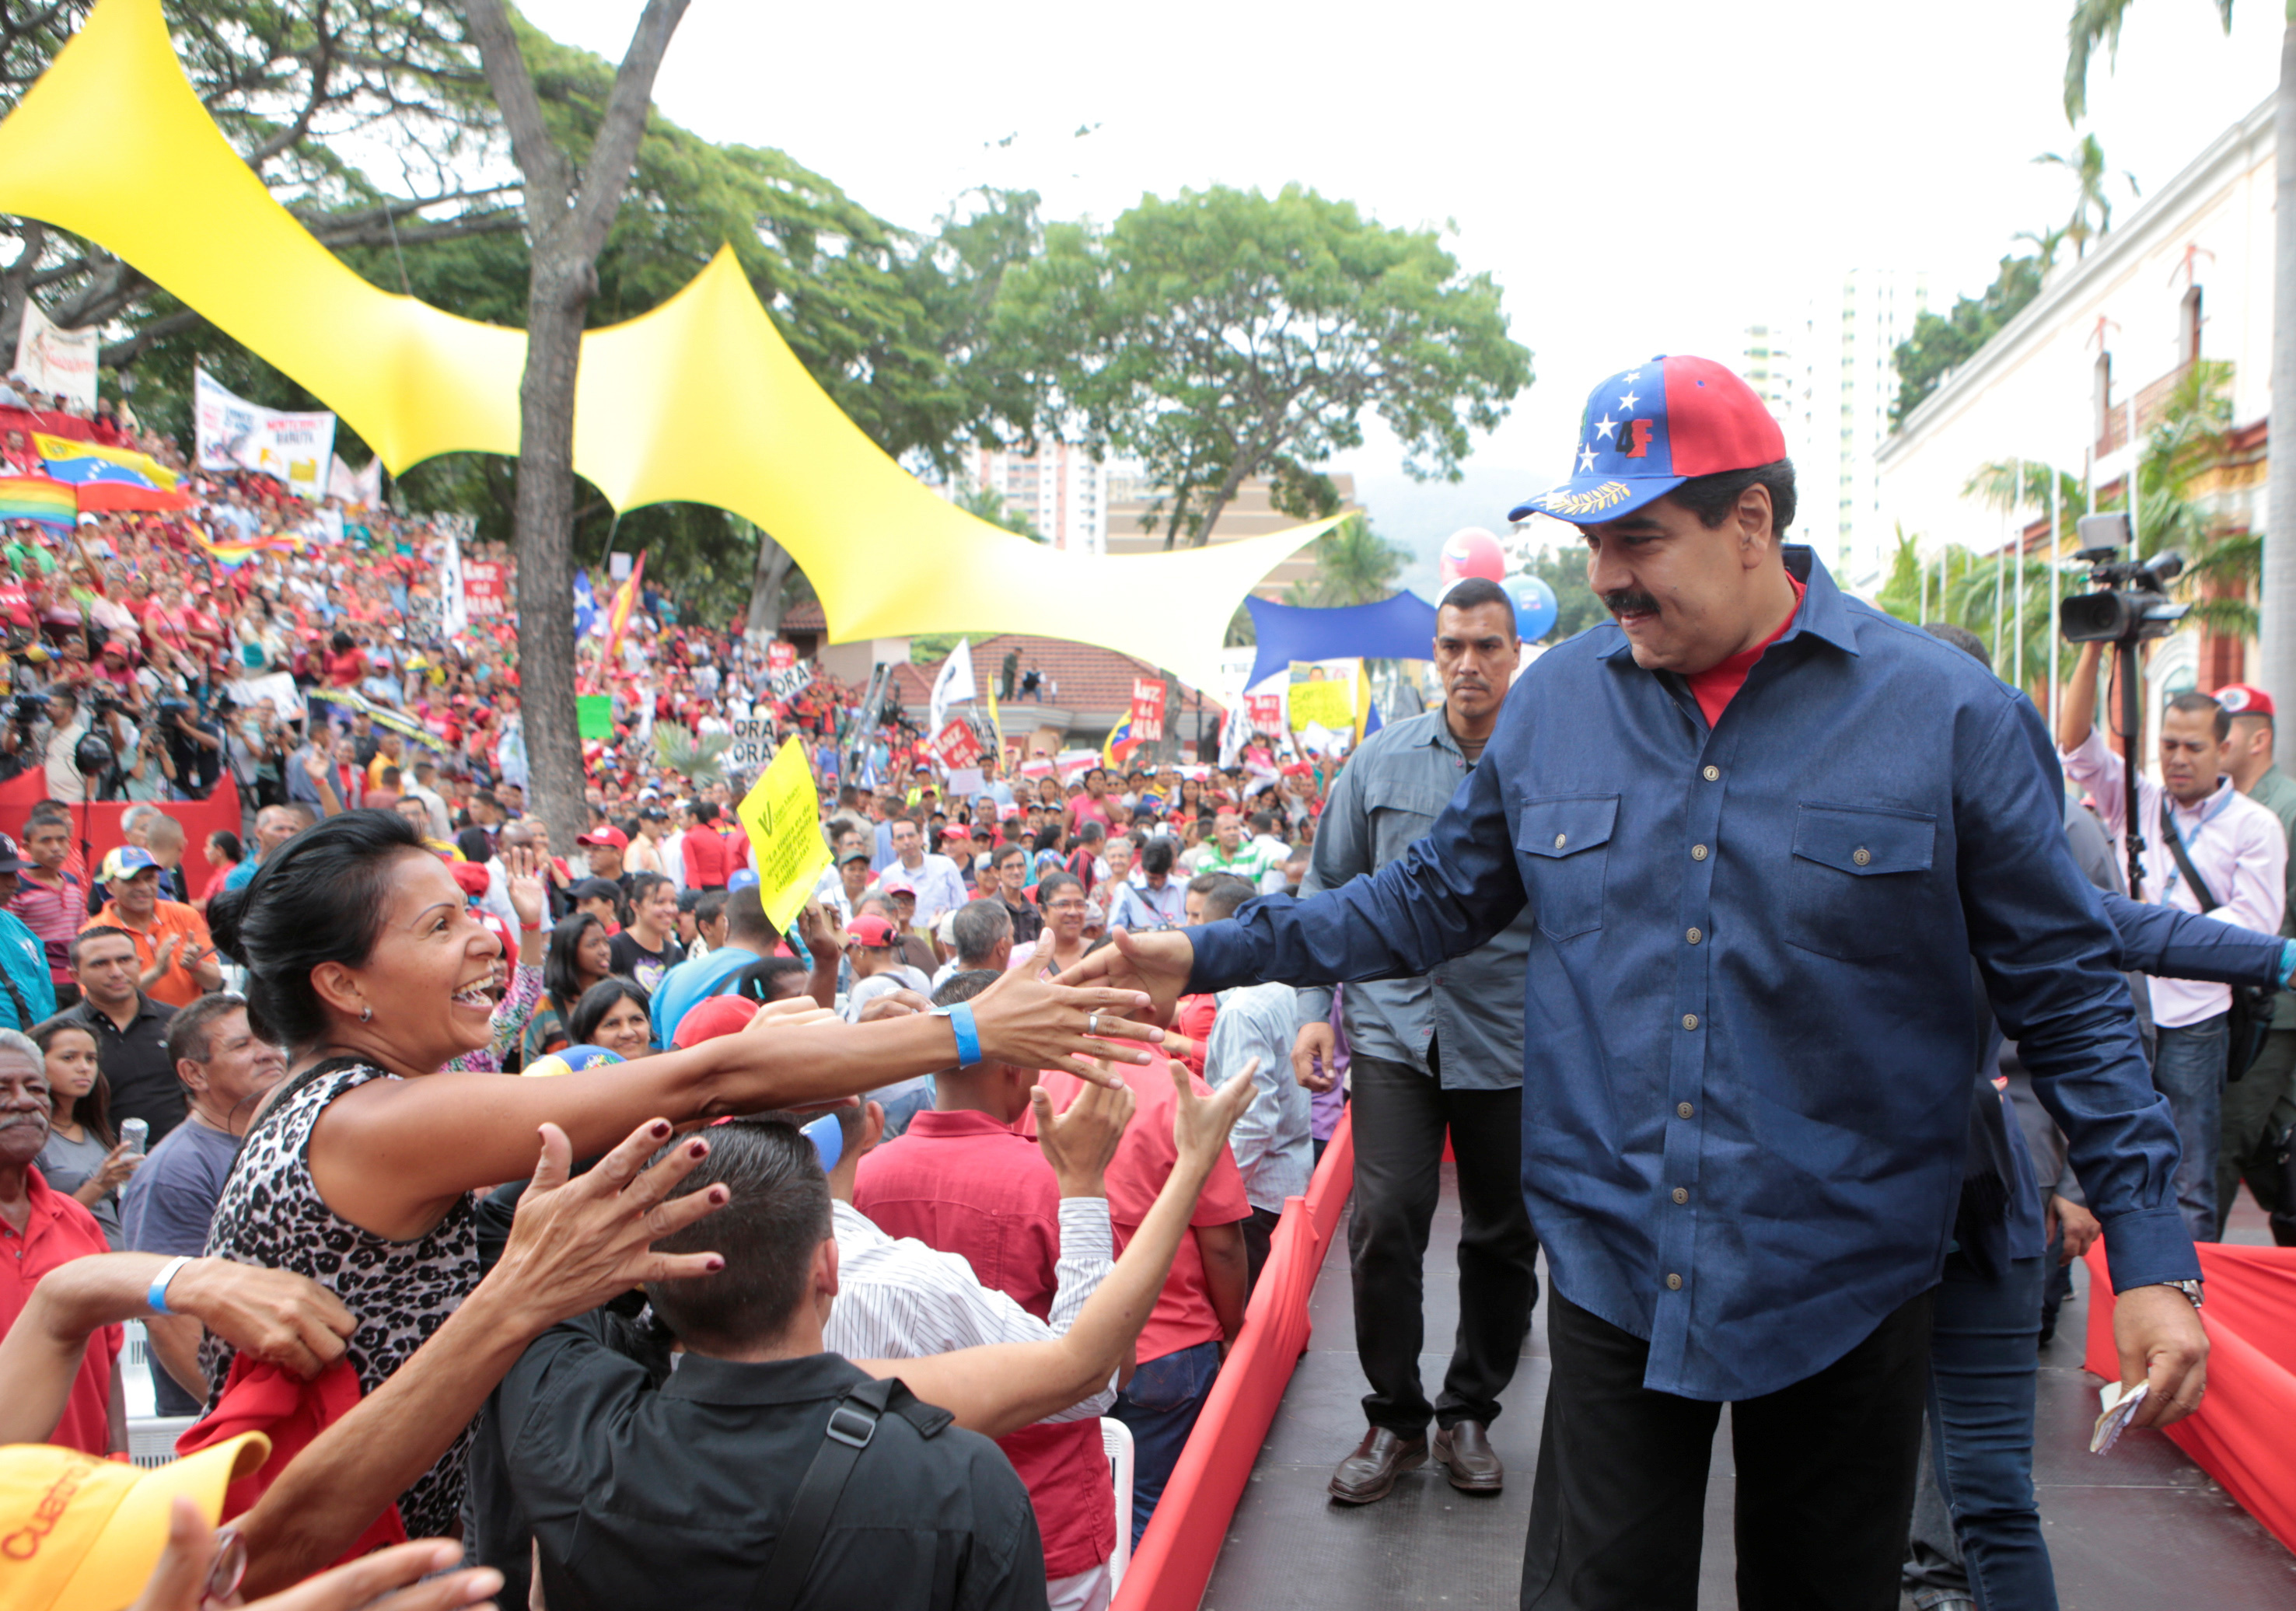 Venezuela's President Nicolas Maduro greets supporters during a rally in support of the Venezuelan government's housing programs at Miraflores Palace in Caracas, Venezuela, May 11, 2016.